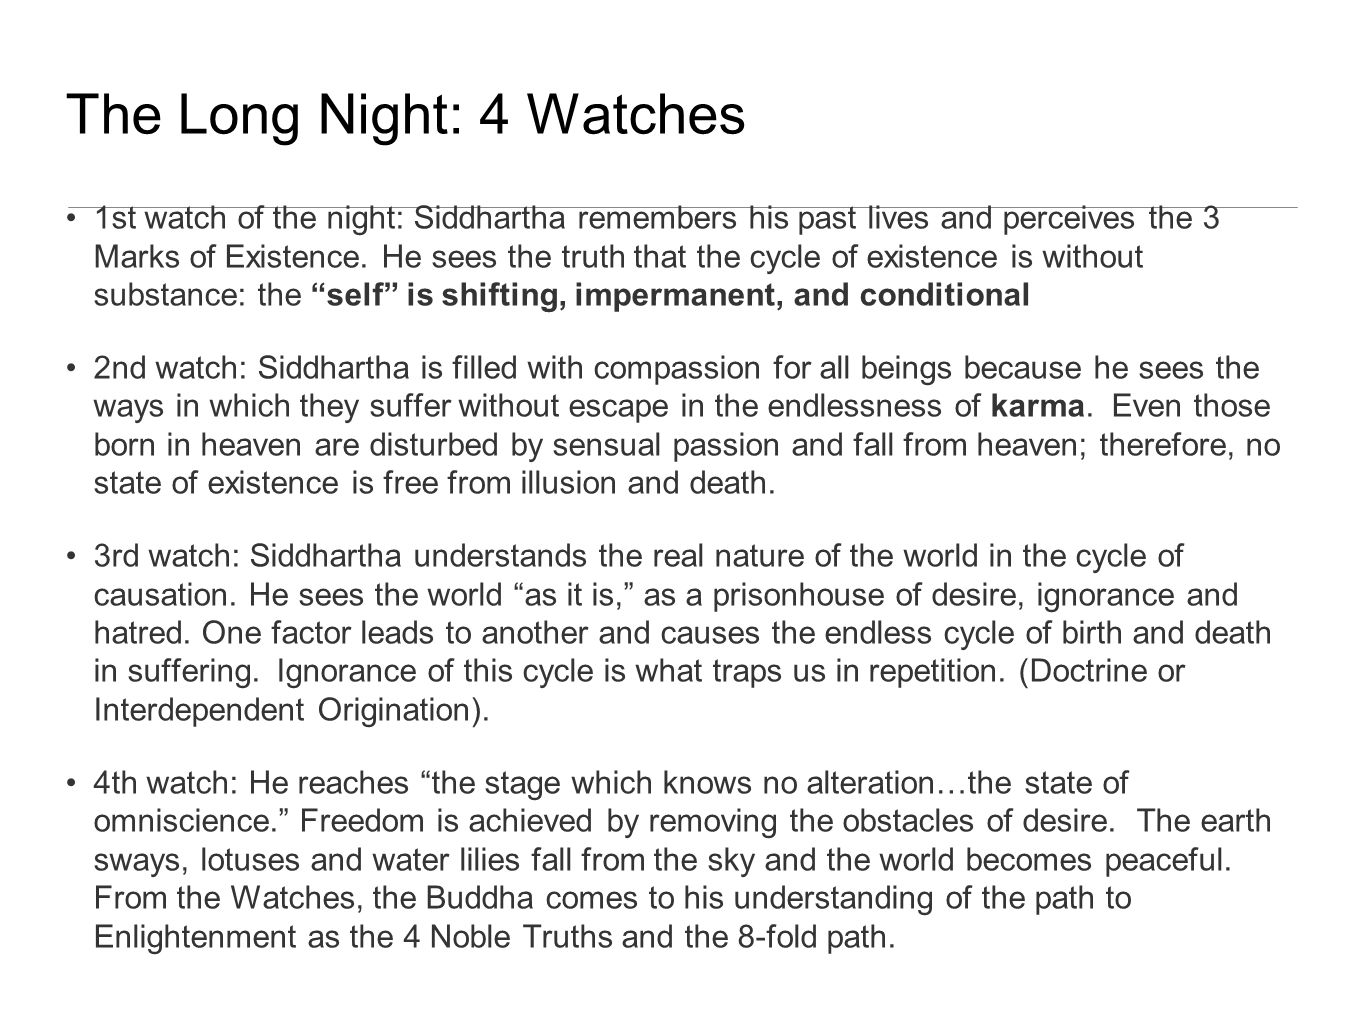 The Long Night: 4 Watches